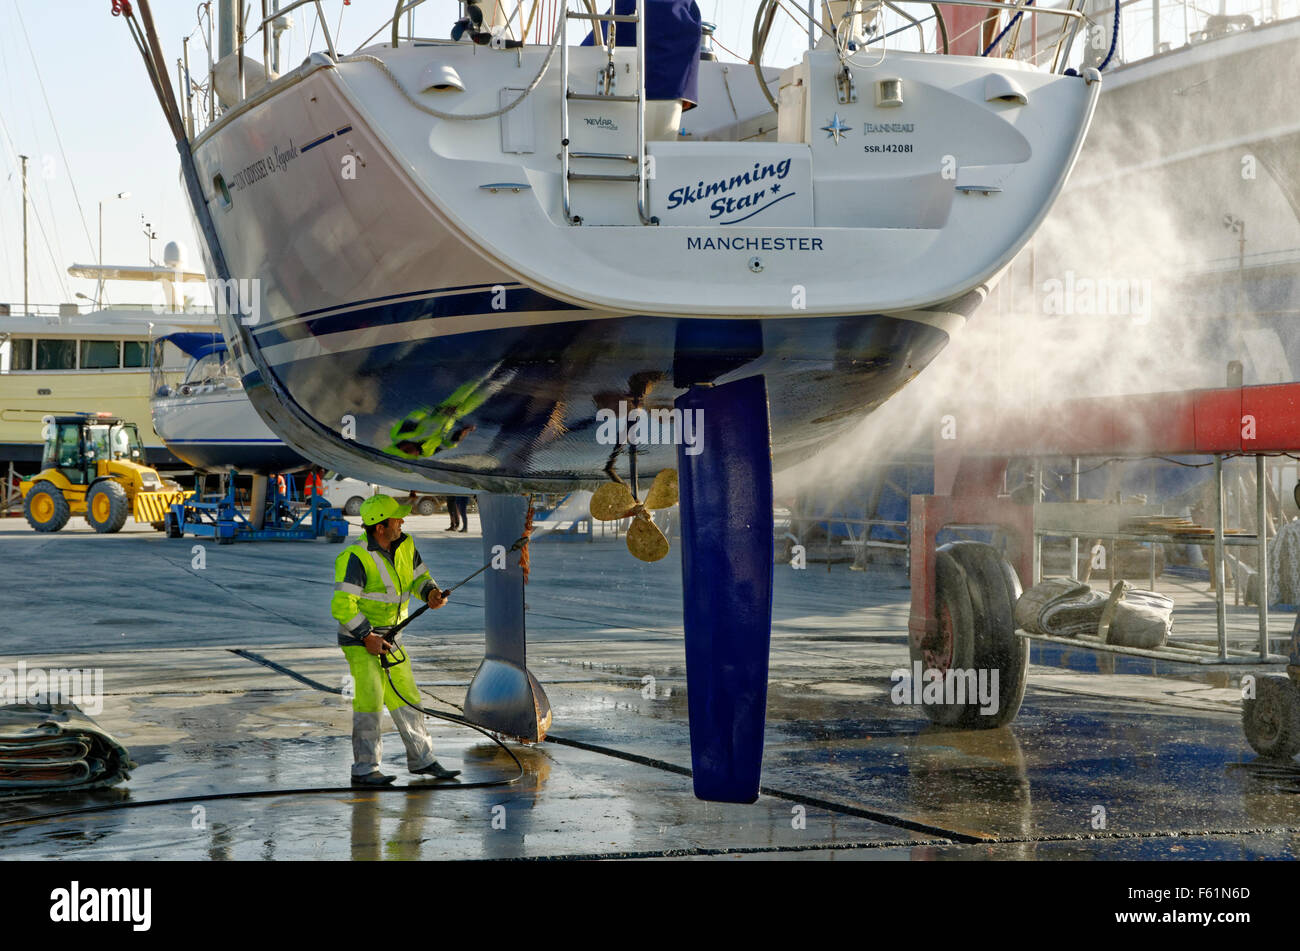 Cruising yacht being lifted and jet-washed to remove marine fouling. - Stock Image